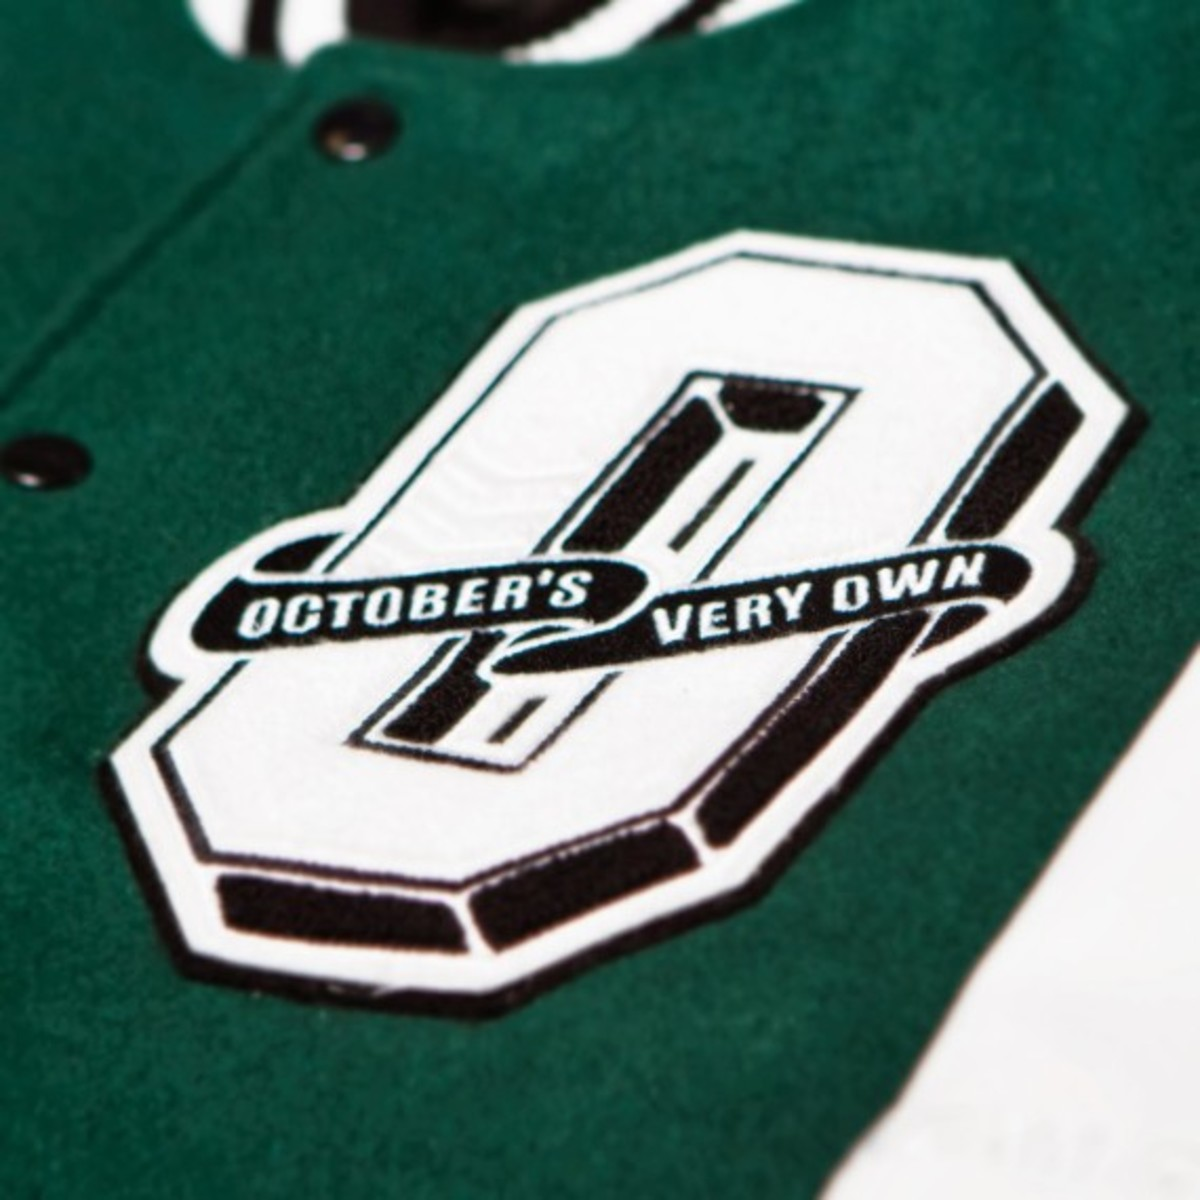 octobers-very-own-roots-canada-2014-tour-jackets-04